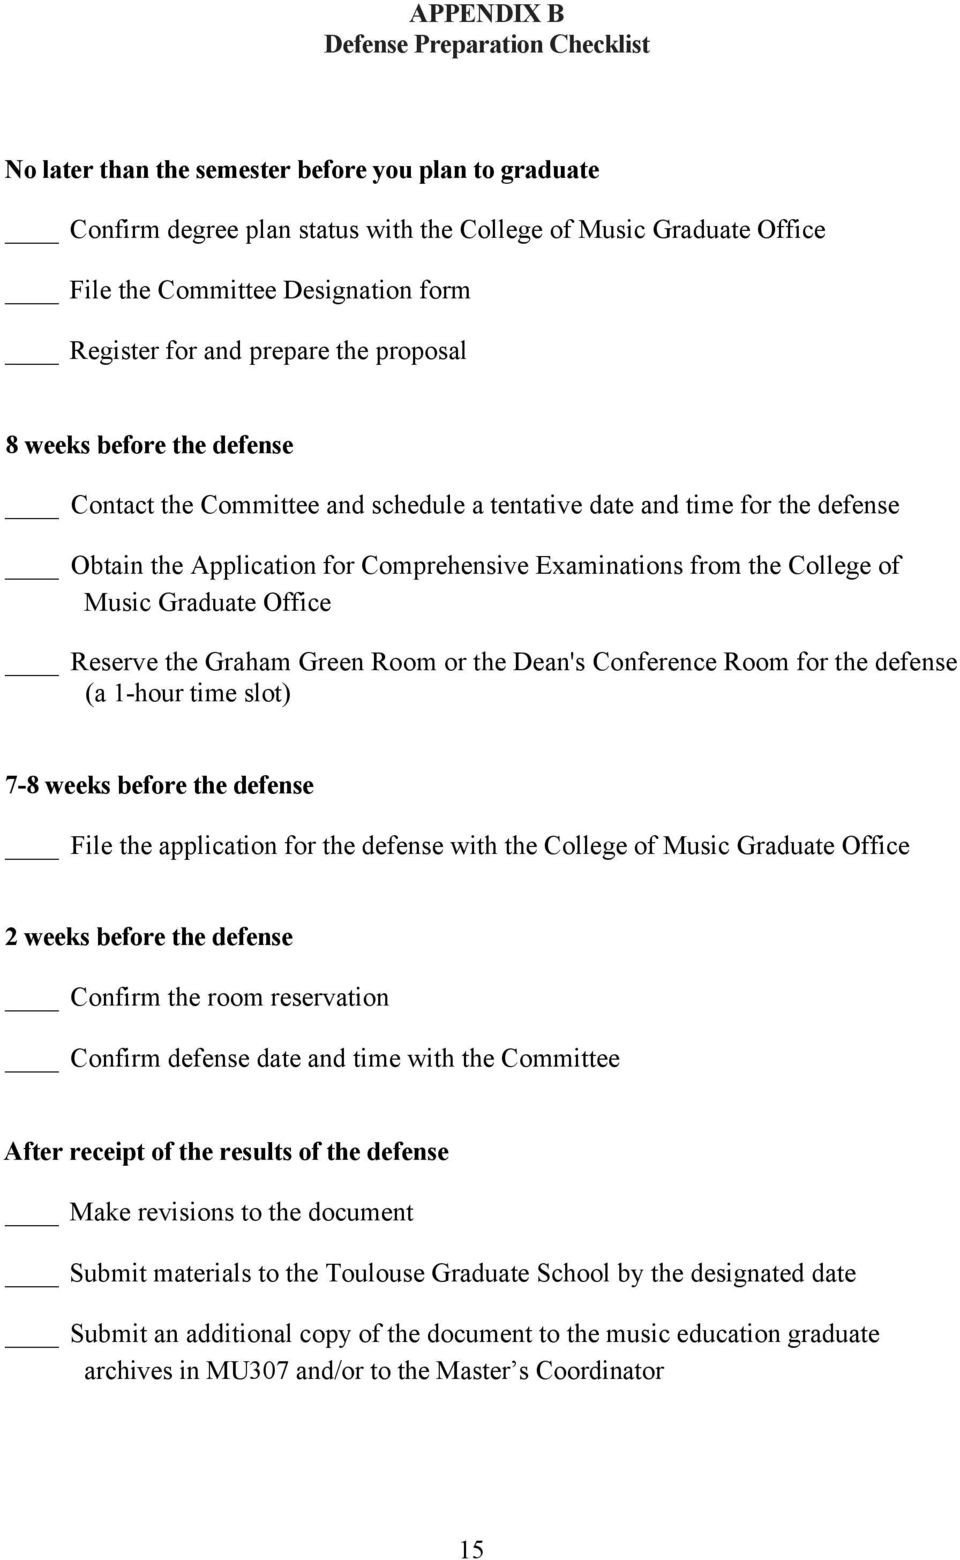 Examinations from the College of Music Graduate Office Reserve the Graham Green Room or the Dean's Conference Room for the defense (a 1-hour time slot) 7-8 weeks before the defense File the